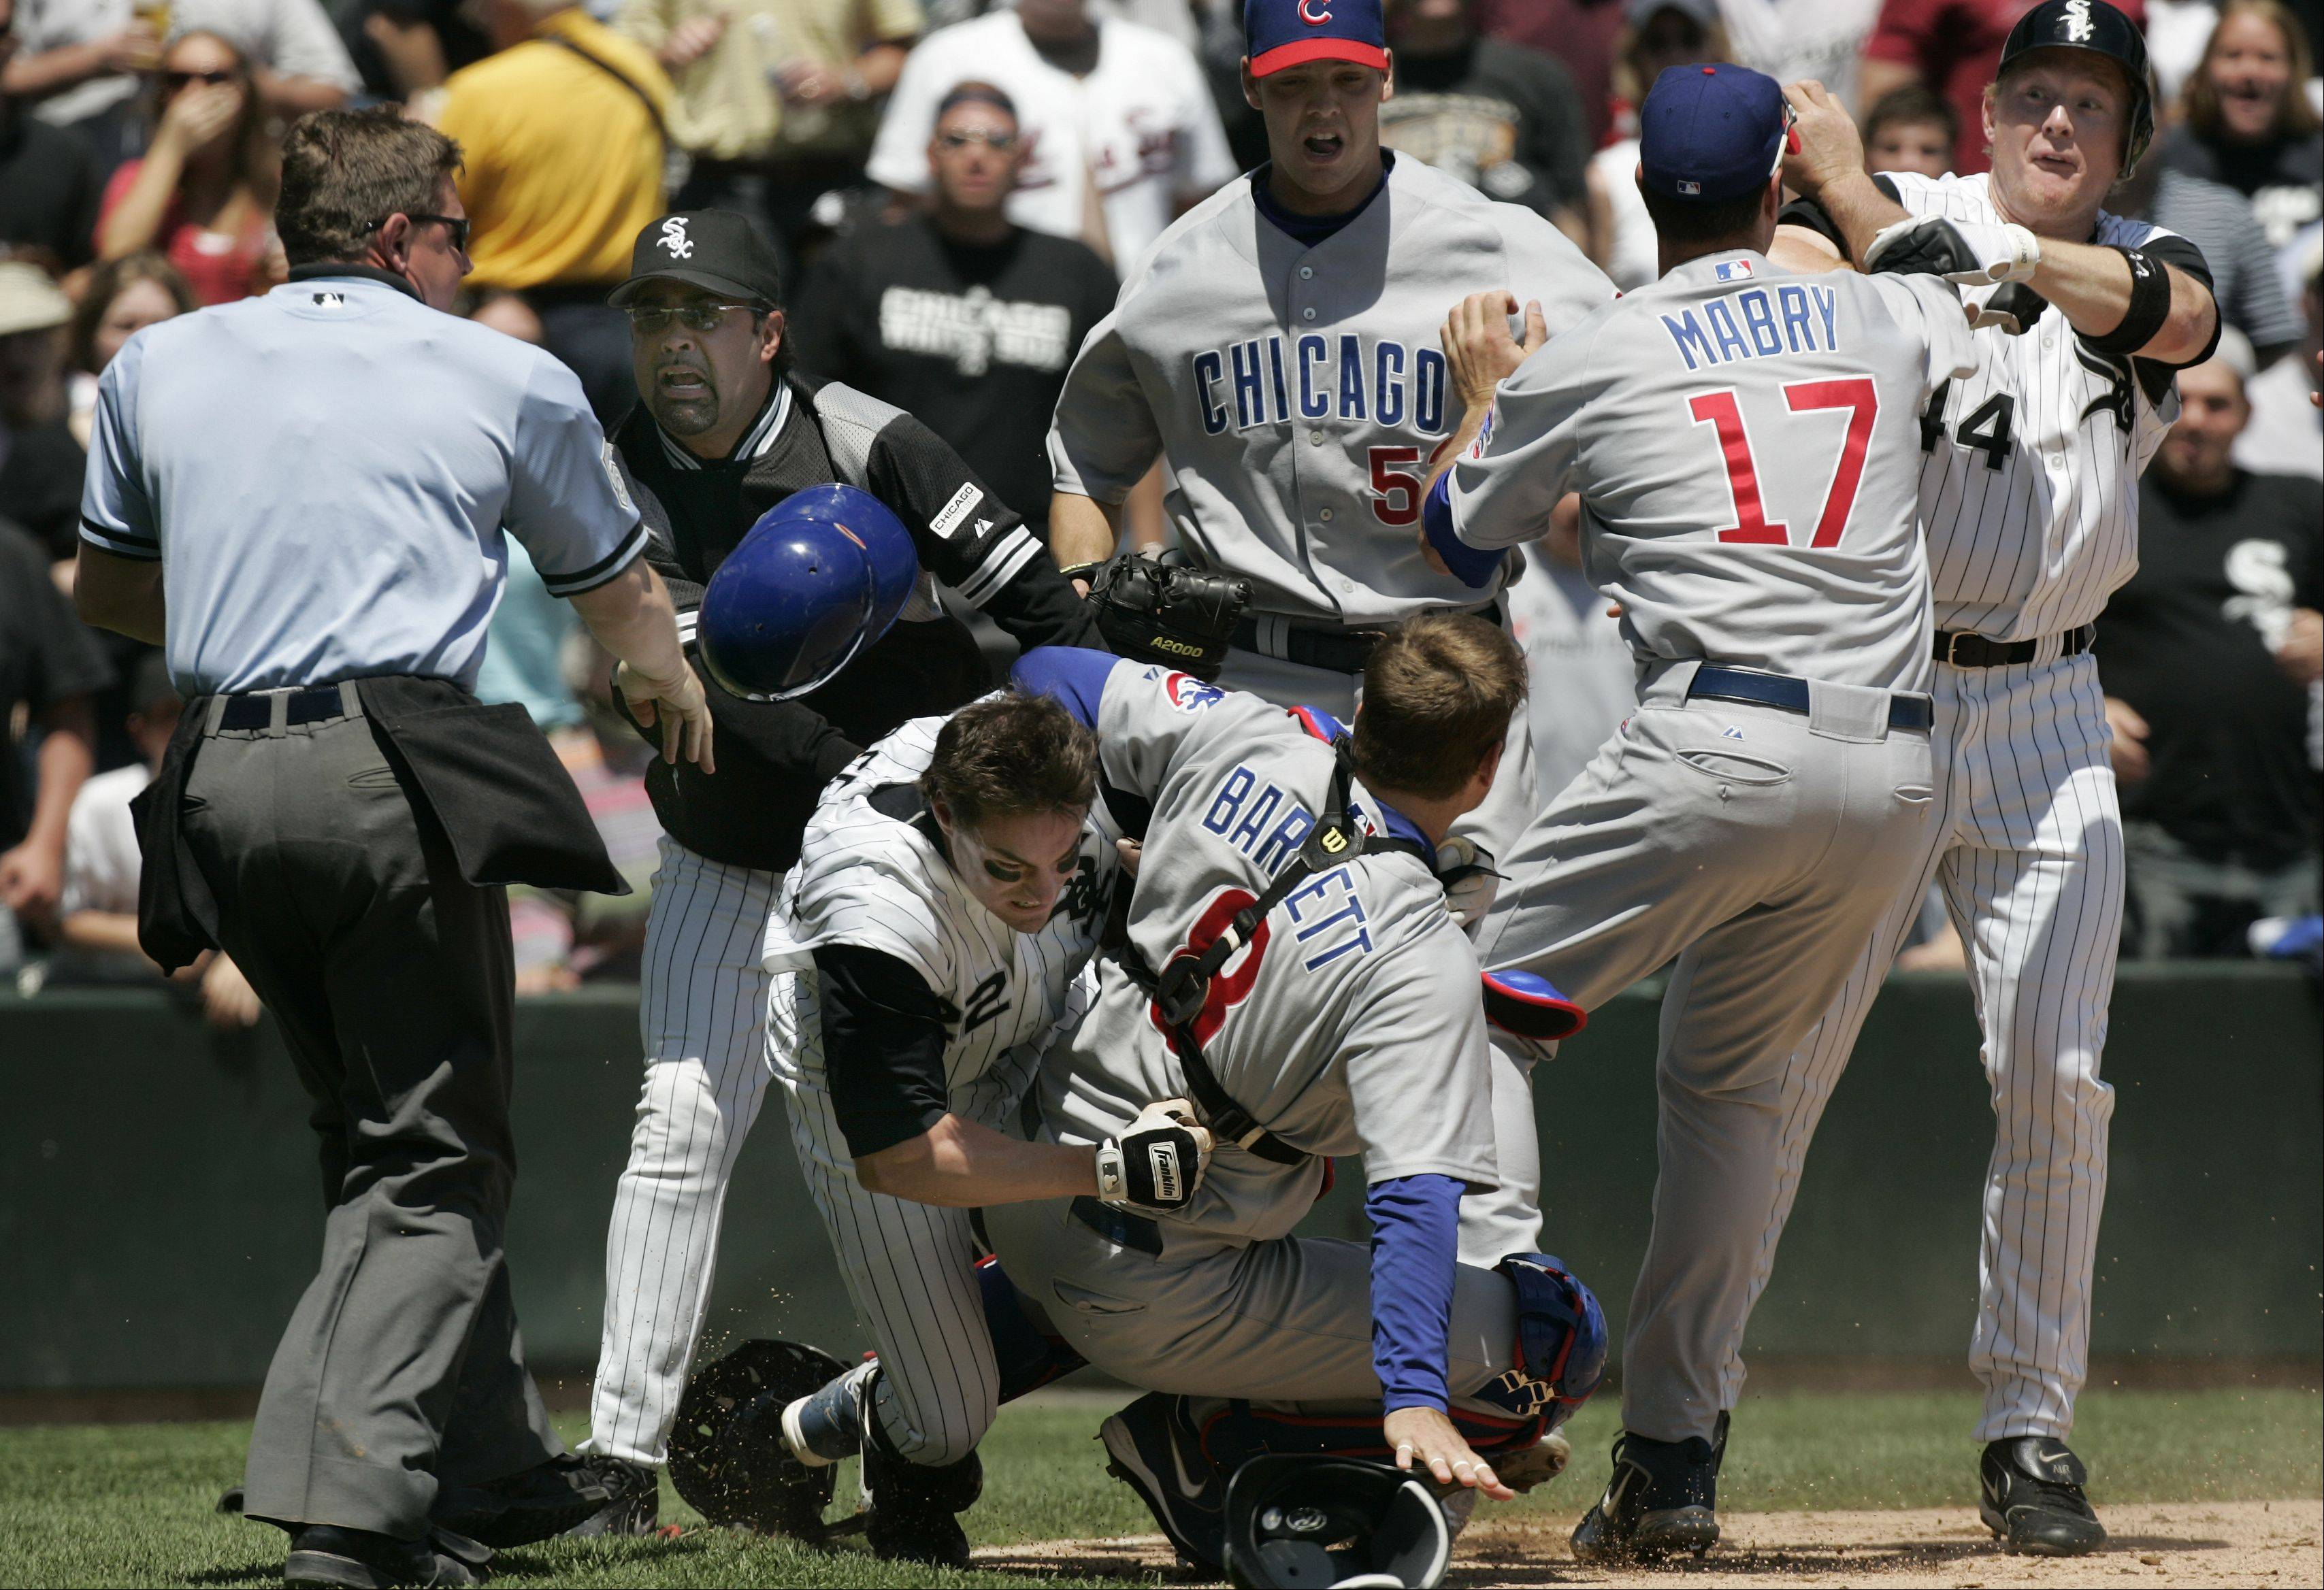 Sox Scott Podsednik tackles Michael Barrett as Ozzie Guillen rushes out and Cubs John Mabry and Sox Brian Anderson go at it Home plat ump Greg Gibson during Game Two at U.S. Cellular Field in Chicago on May 20, 2006.